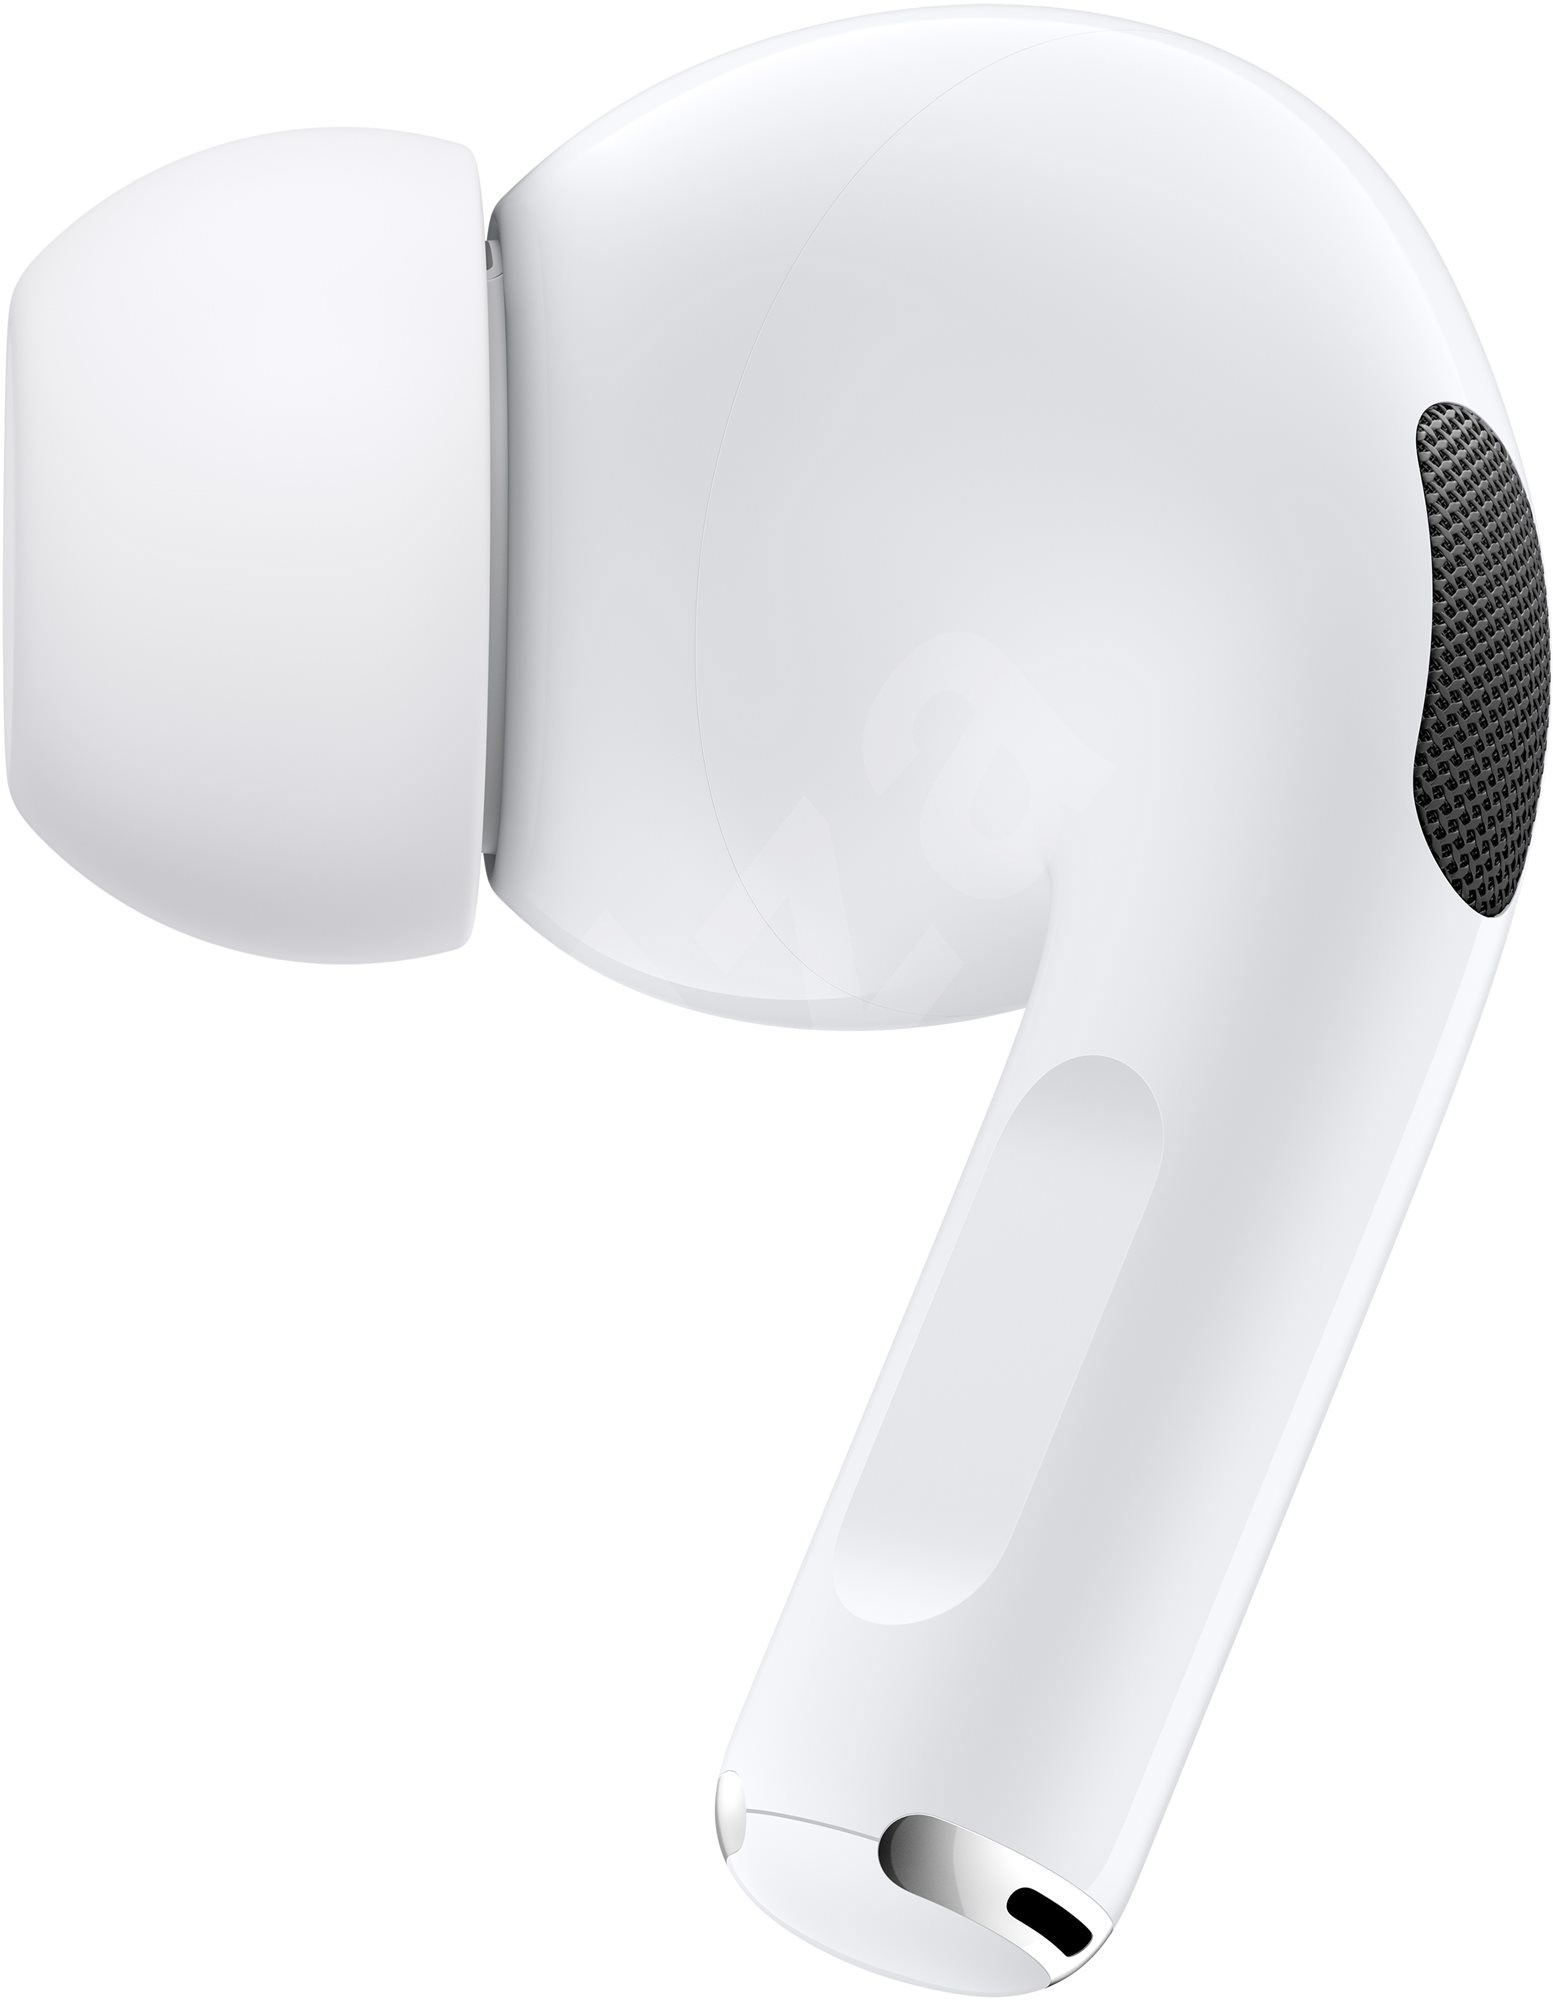 airpods-pro_6